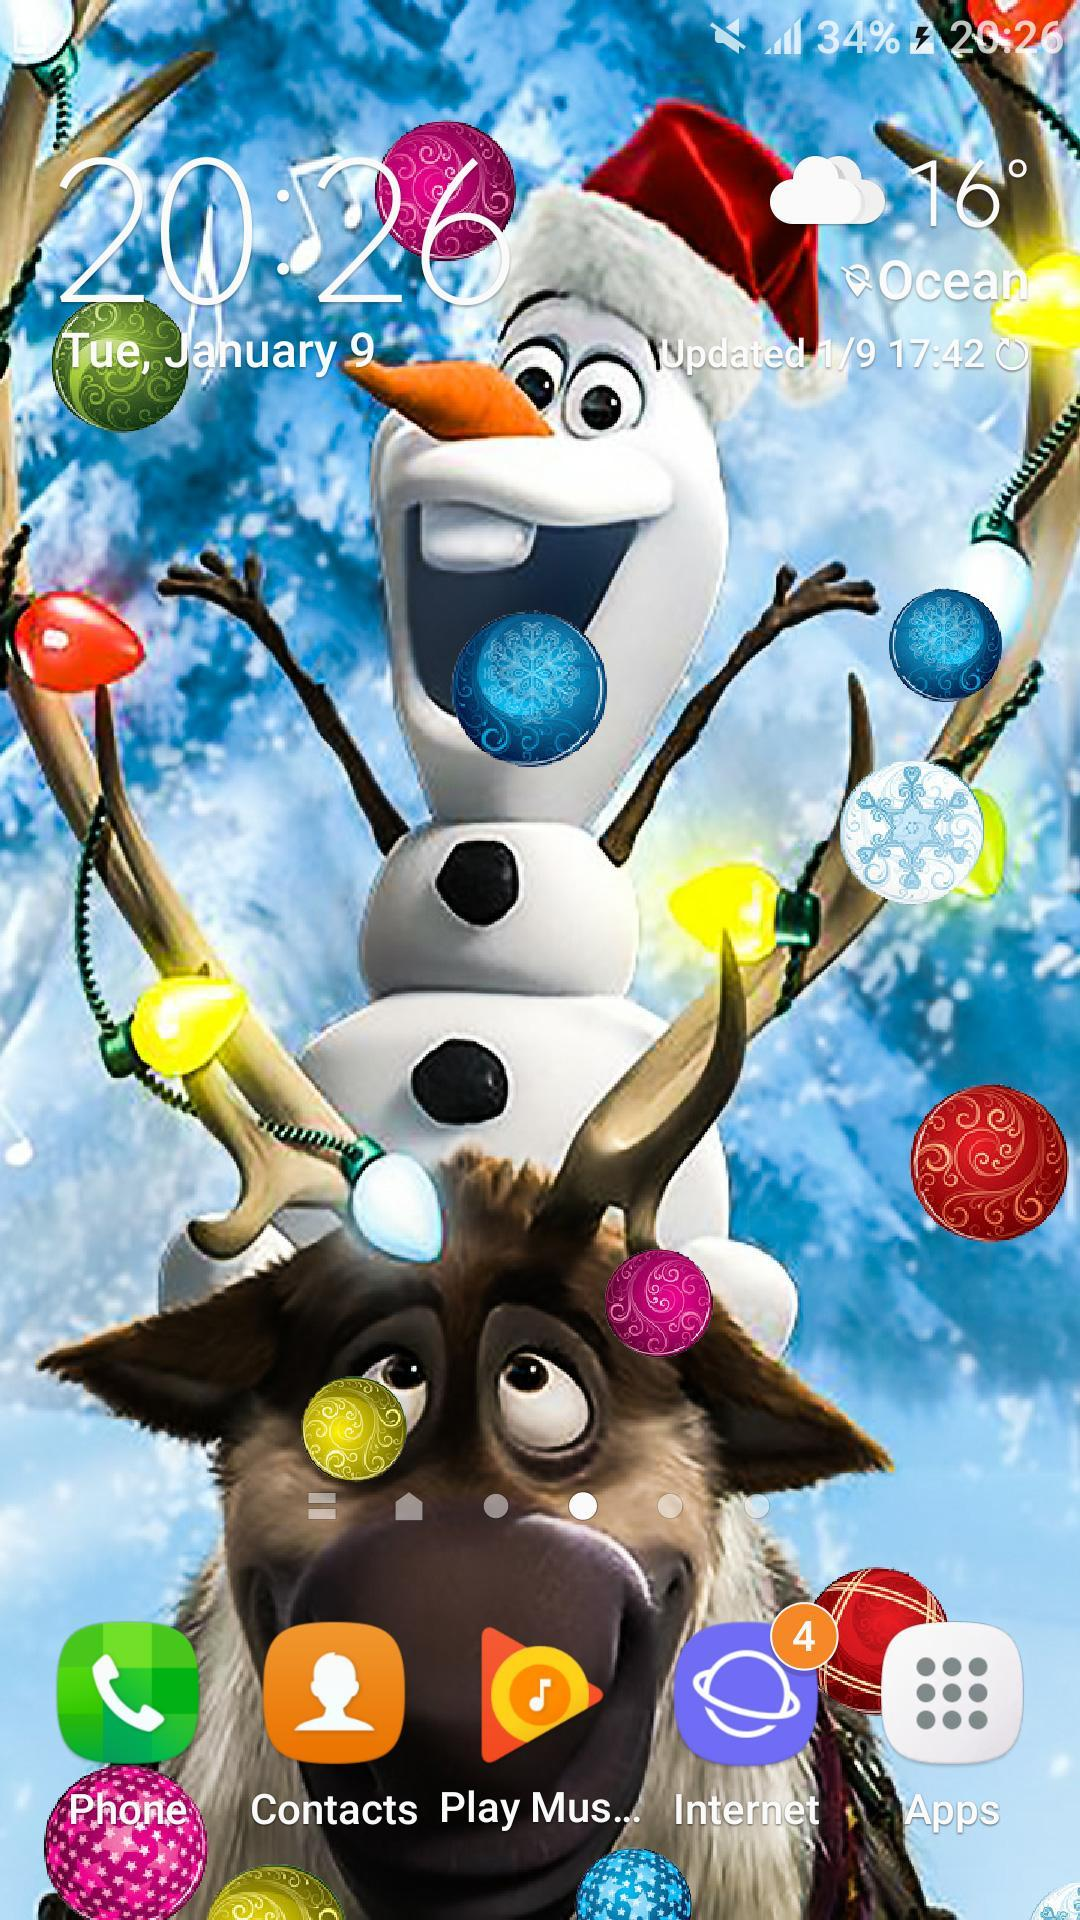 Hd Olaf Wallpaper Frozen For Fans For Android Apk Download